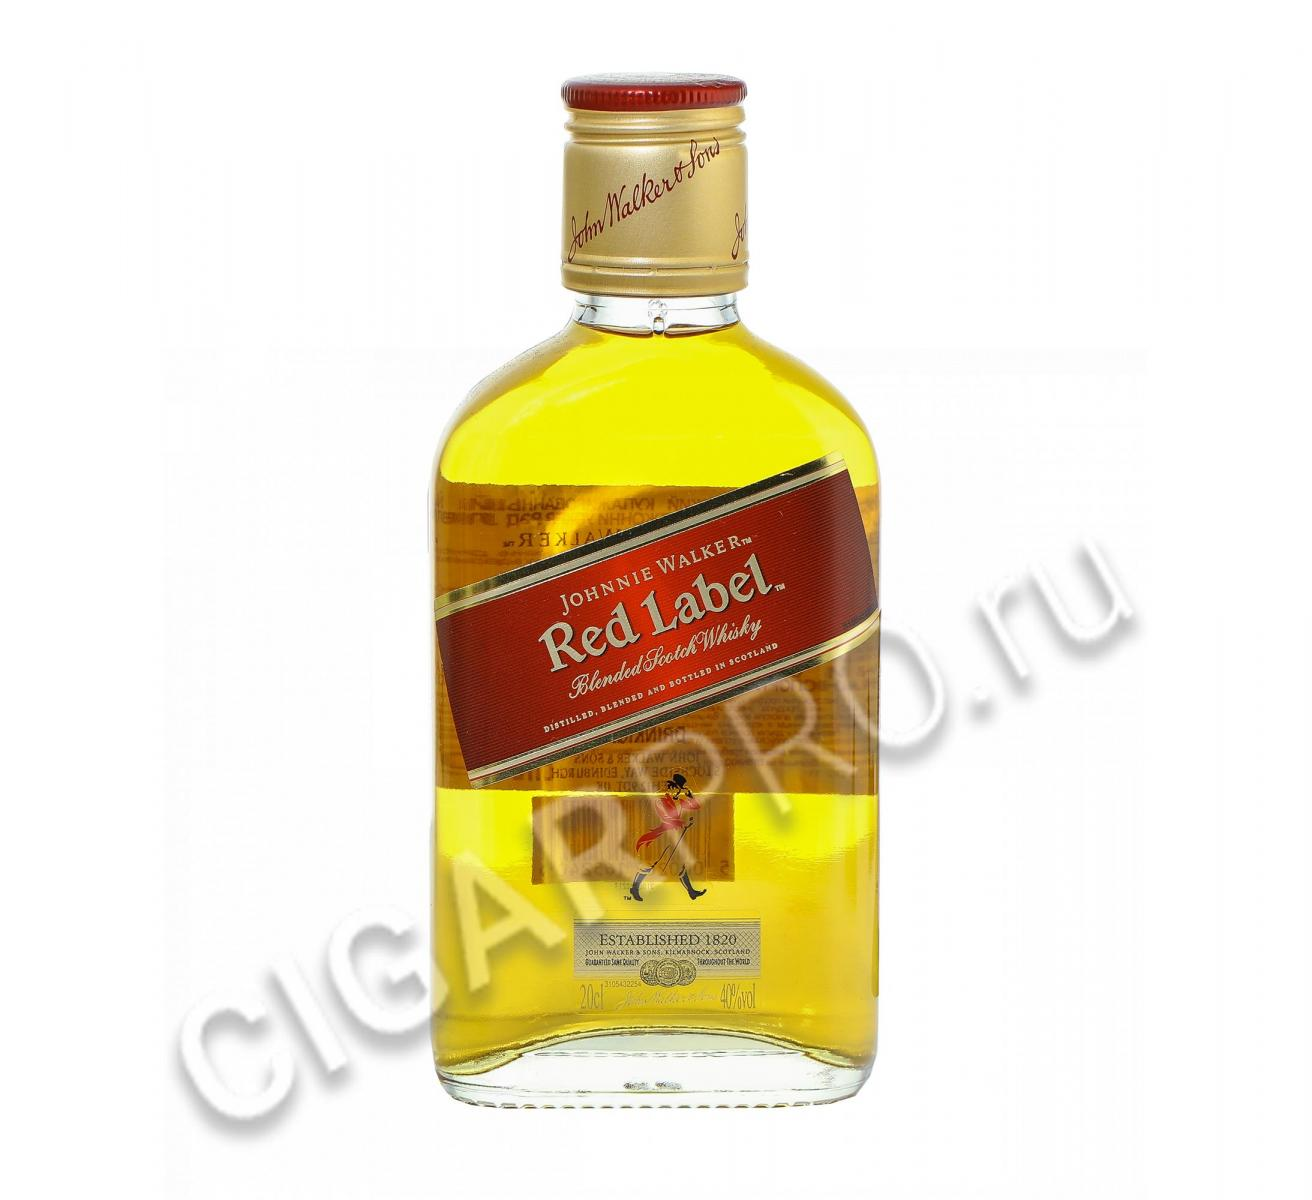 Johnnie Walker Red Label купить шотландский виски Джонни Уокер Рэд Лэйбл 0,2 л цена